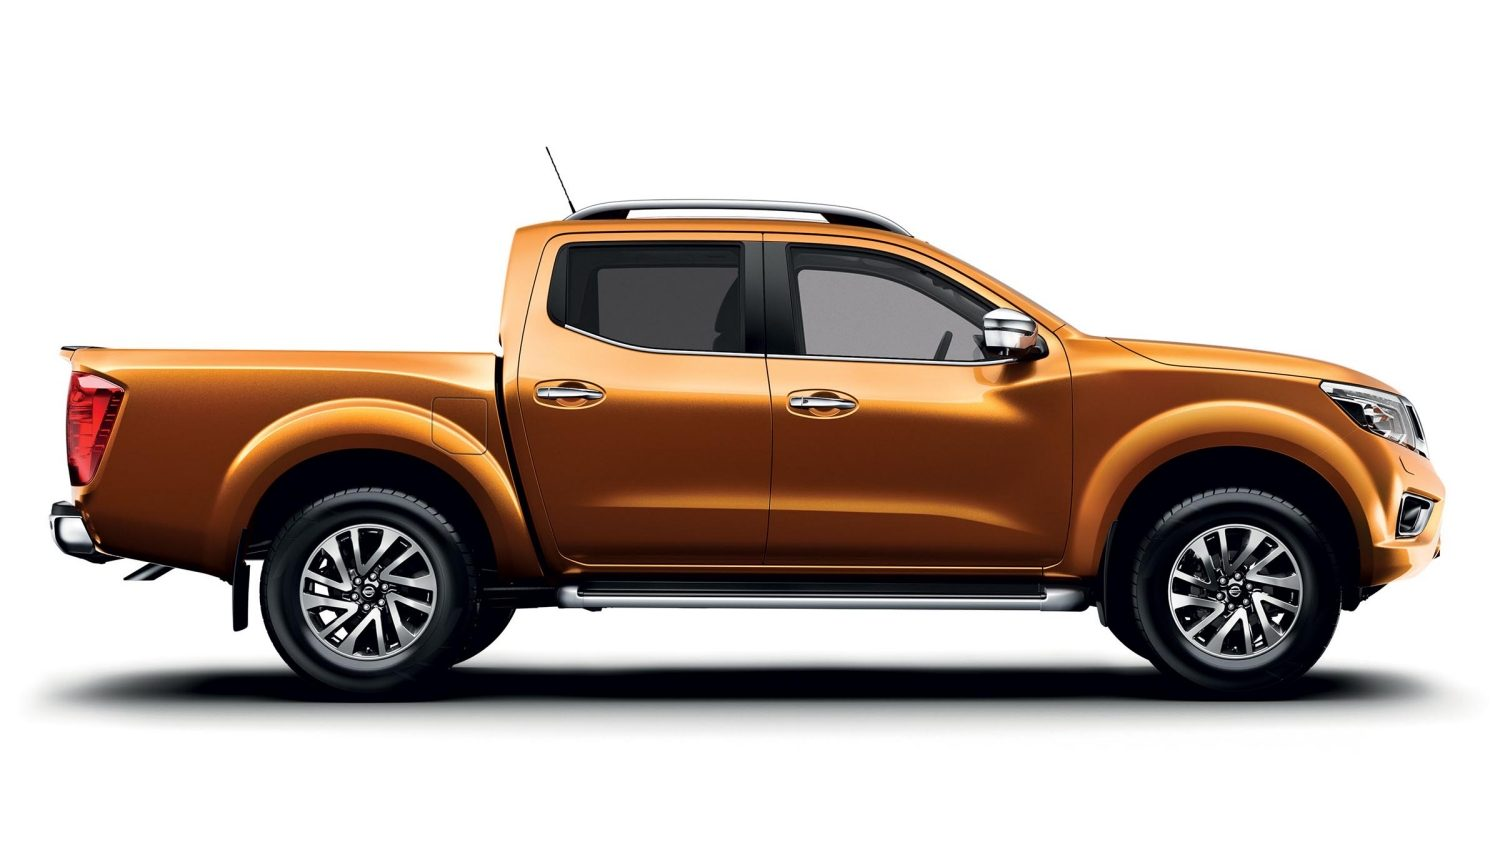 Pick up Nissan NAVARA Earth Bronze - Vista estática frontal 3/4 numa sala branca